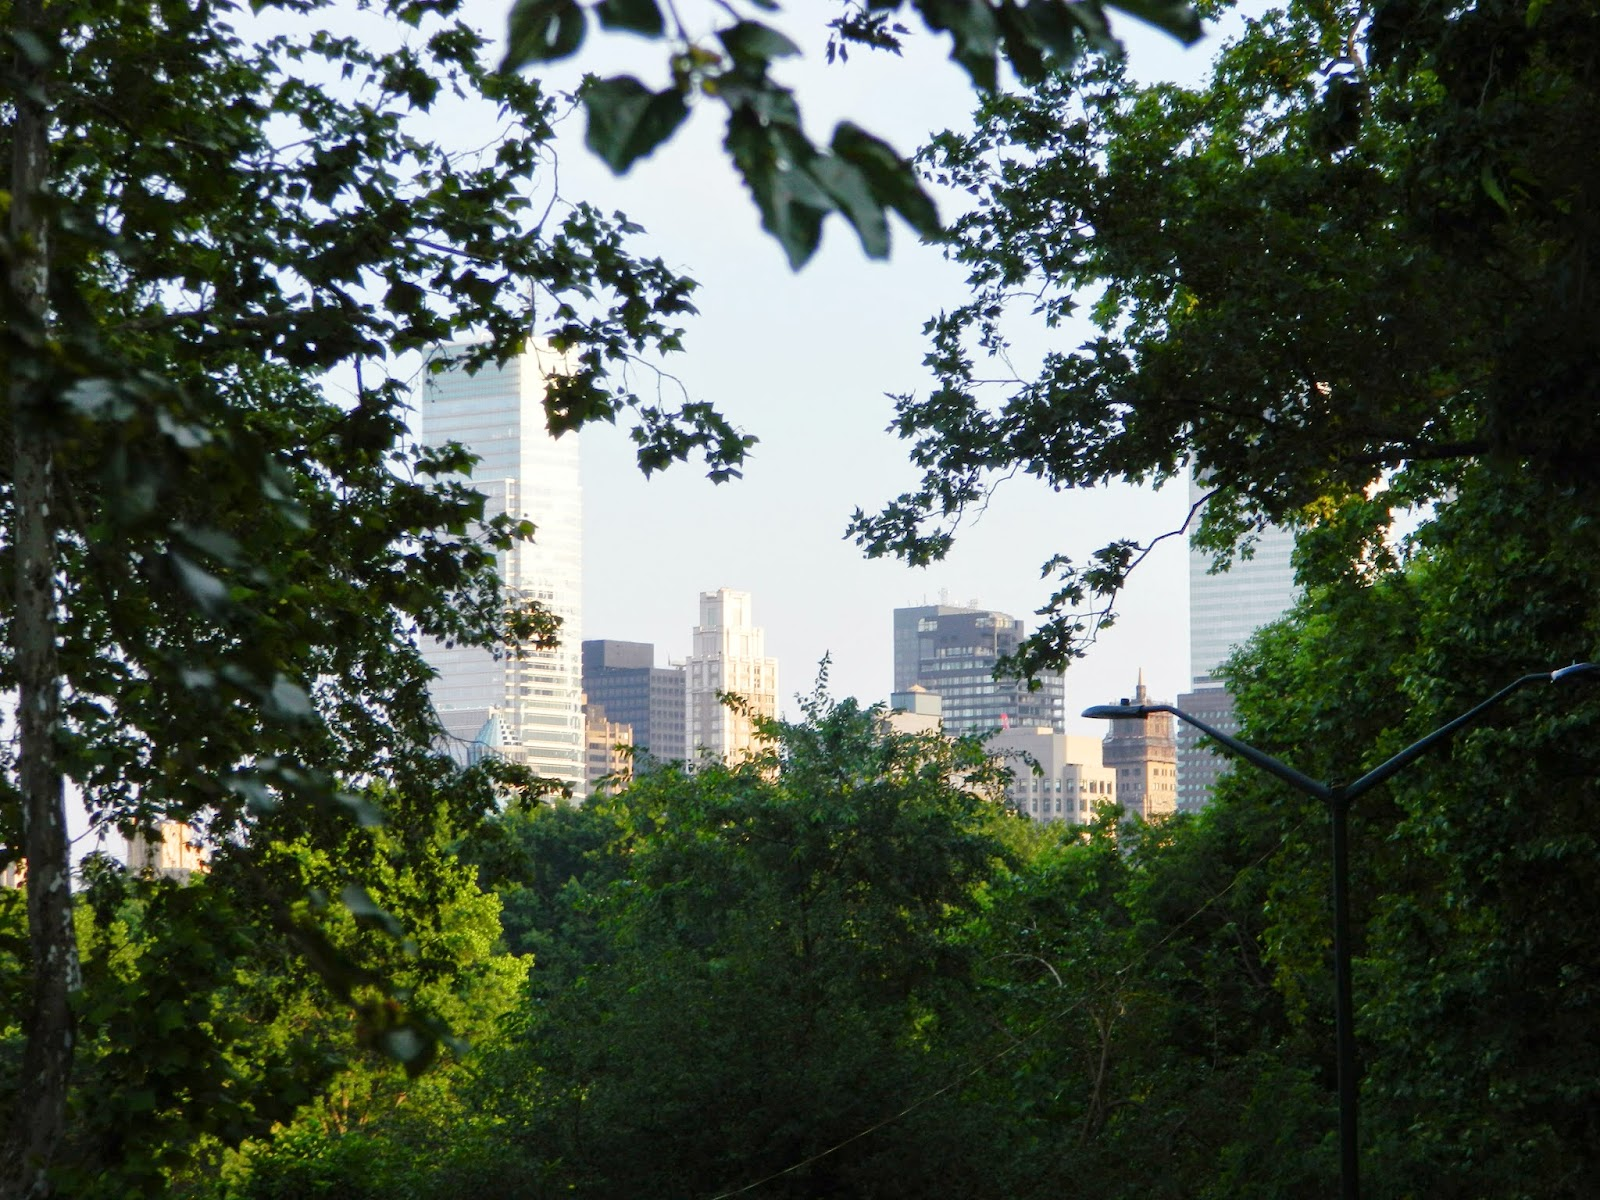 new york city architecture central park tree view